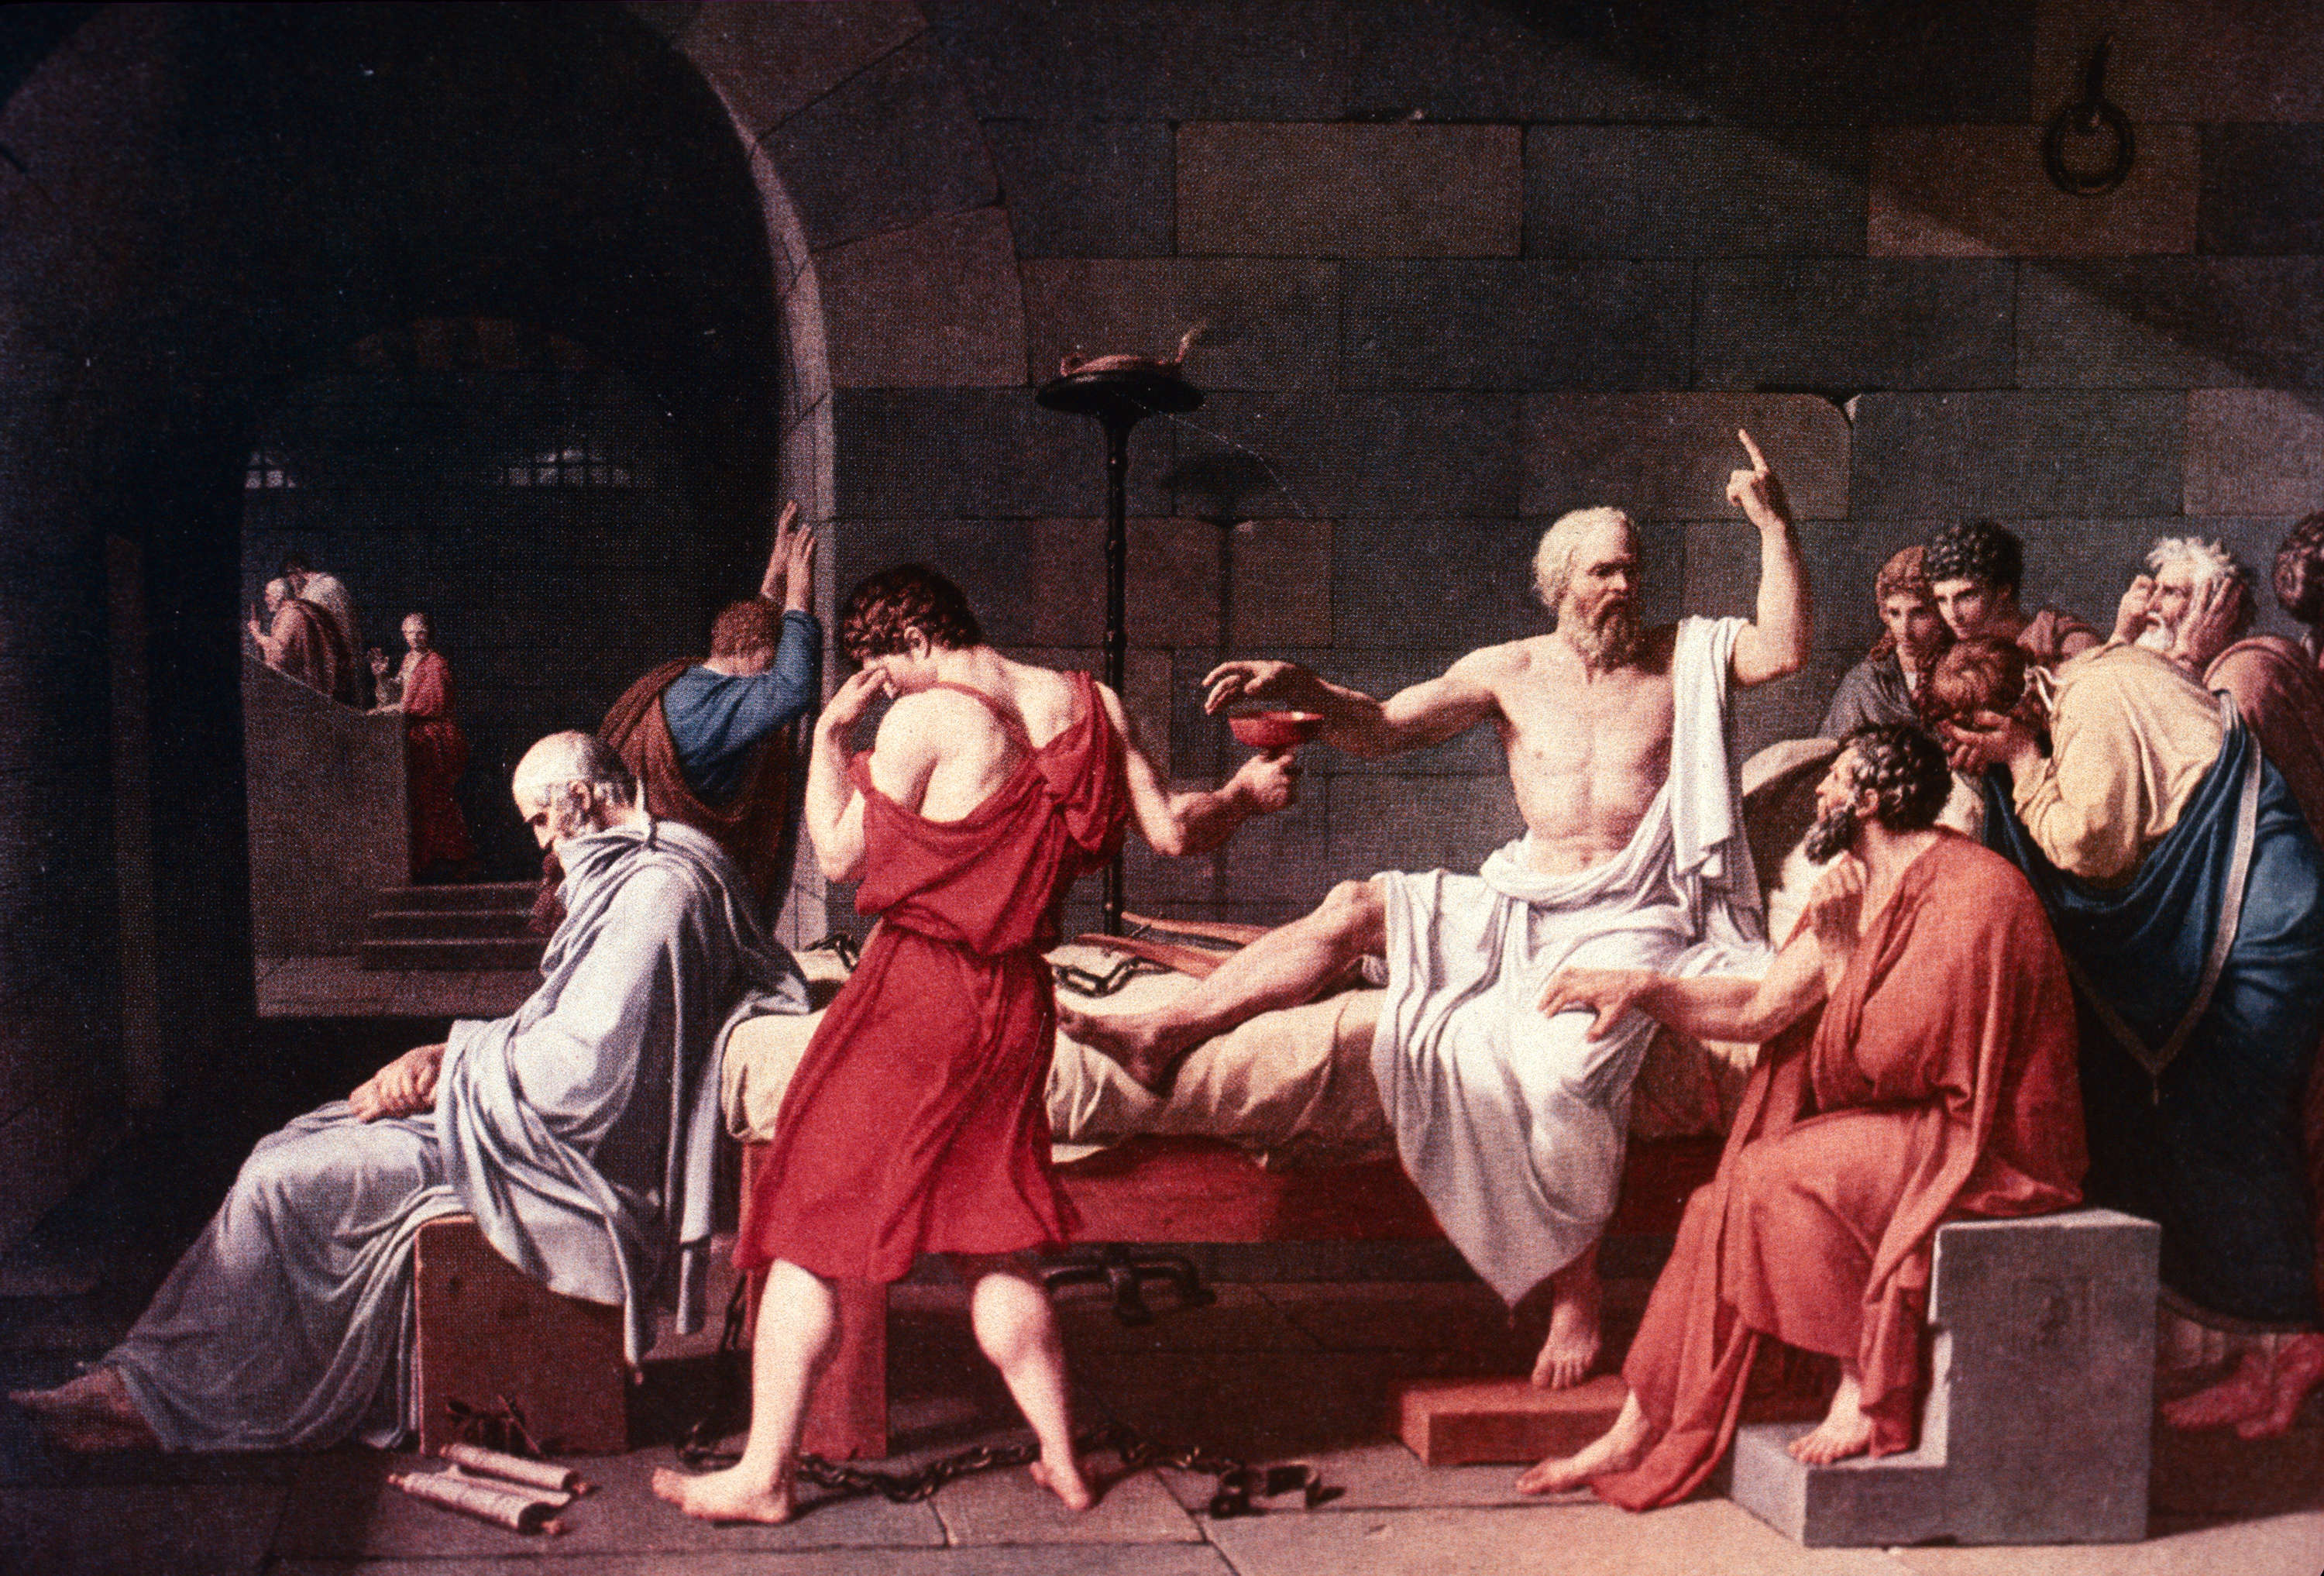 the death of socrates When the political climate of greece turned, socrates was sentenced to death by hemlock poisoning in 399 bc he accepted this judgment rather than fleeing into exile.